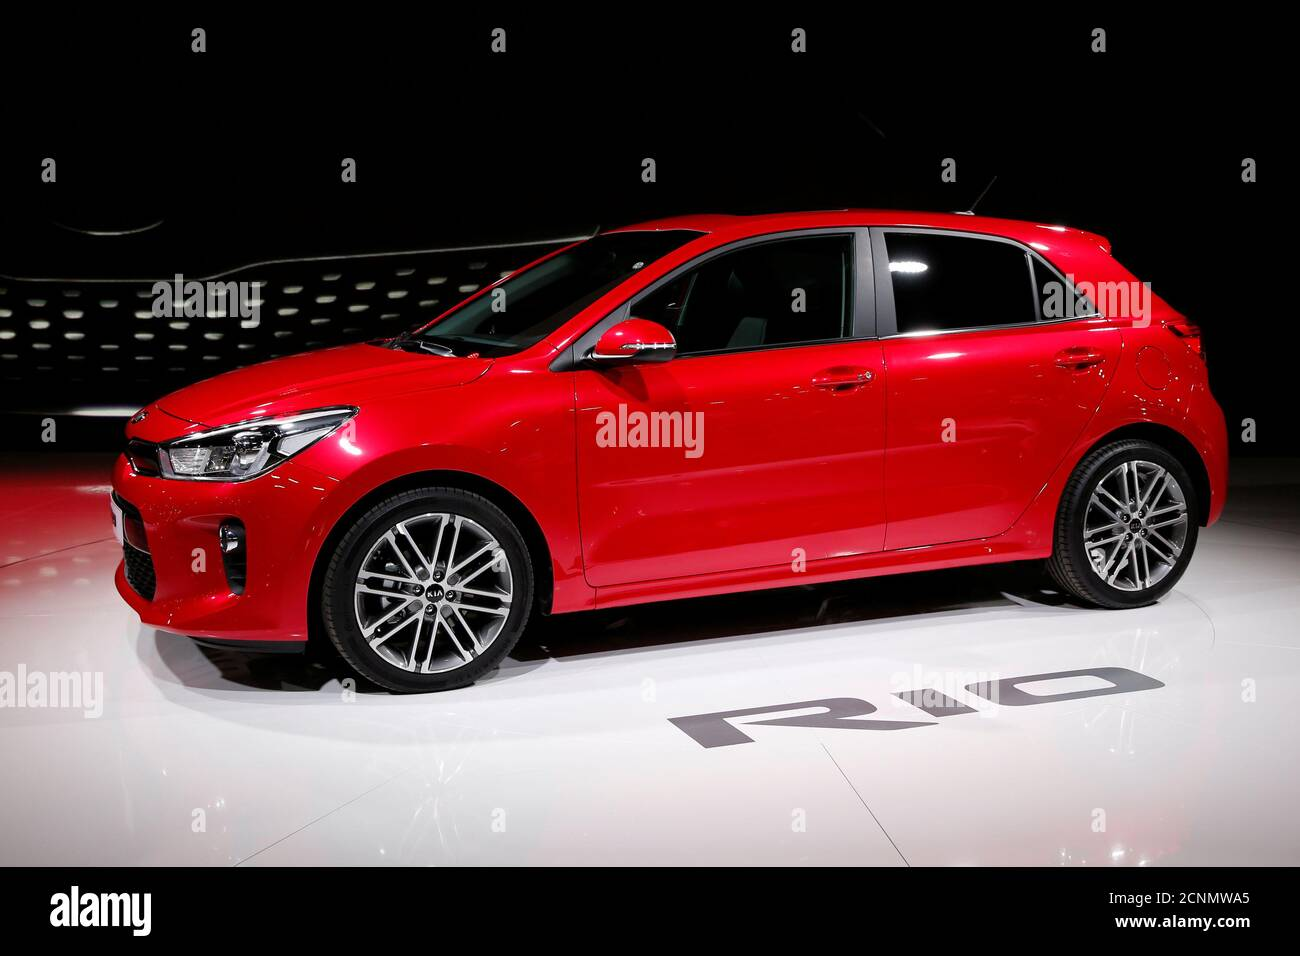 The Kia Rio is displayed on media day at the Paris auto show, in Paris, France, September 29, 2016. REUTERS/Benoit Tessier Banque D'Images